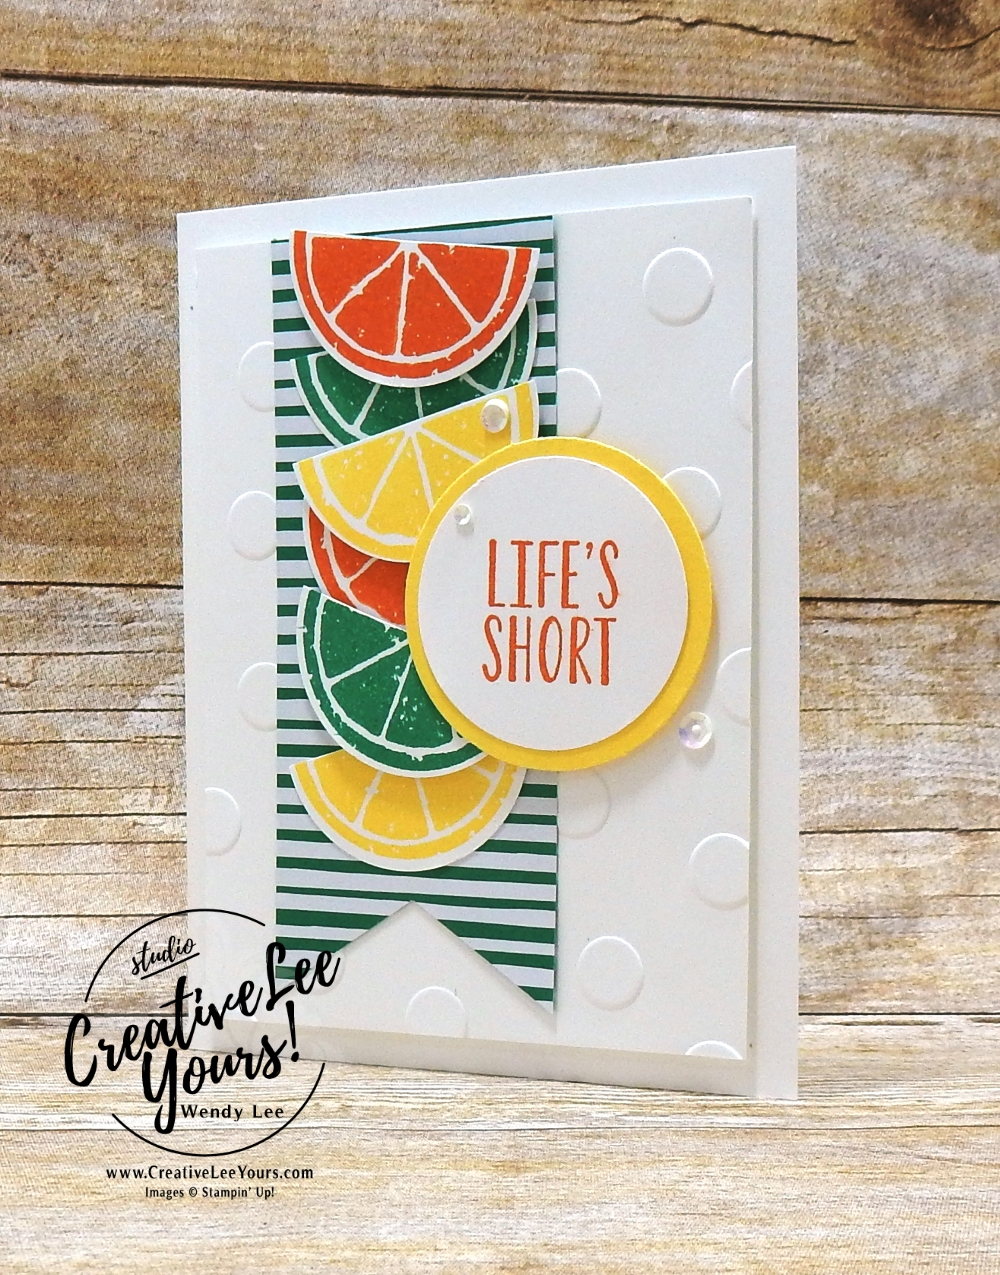 Lifes short by wendy lee, stampin up, handmade, stamping, #creativeleeyours, creatively yours, creative-lee yours, Kylie Bertucci, international highlights, blog hop, lemon zest stamp set, encourage, thanks, support, #makeacardsendacard, SU